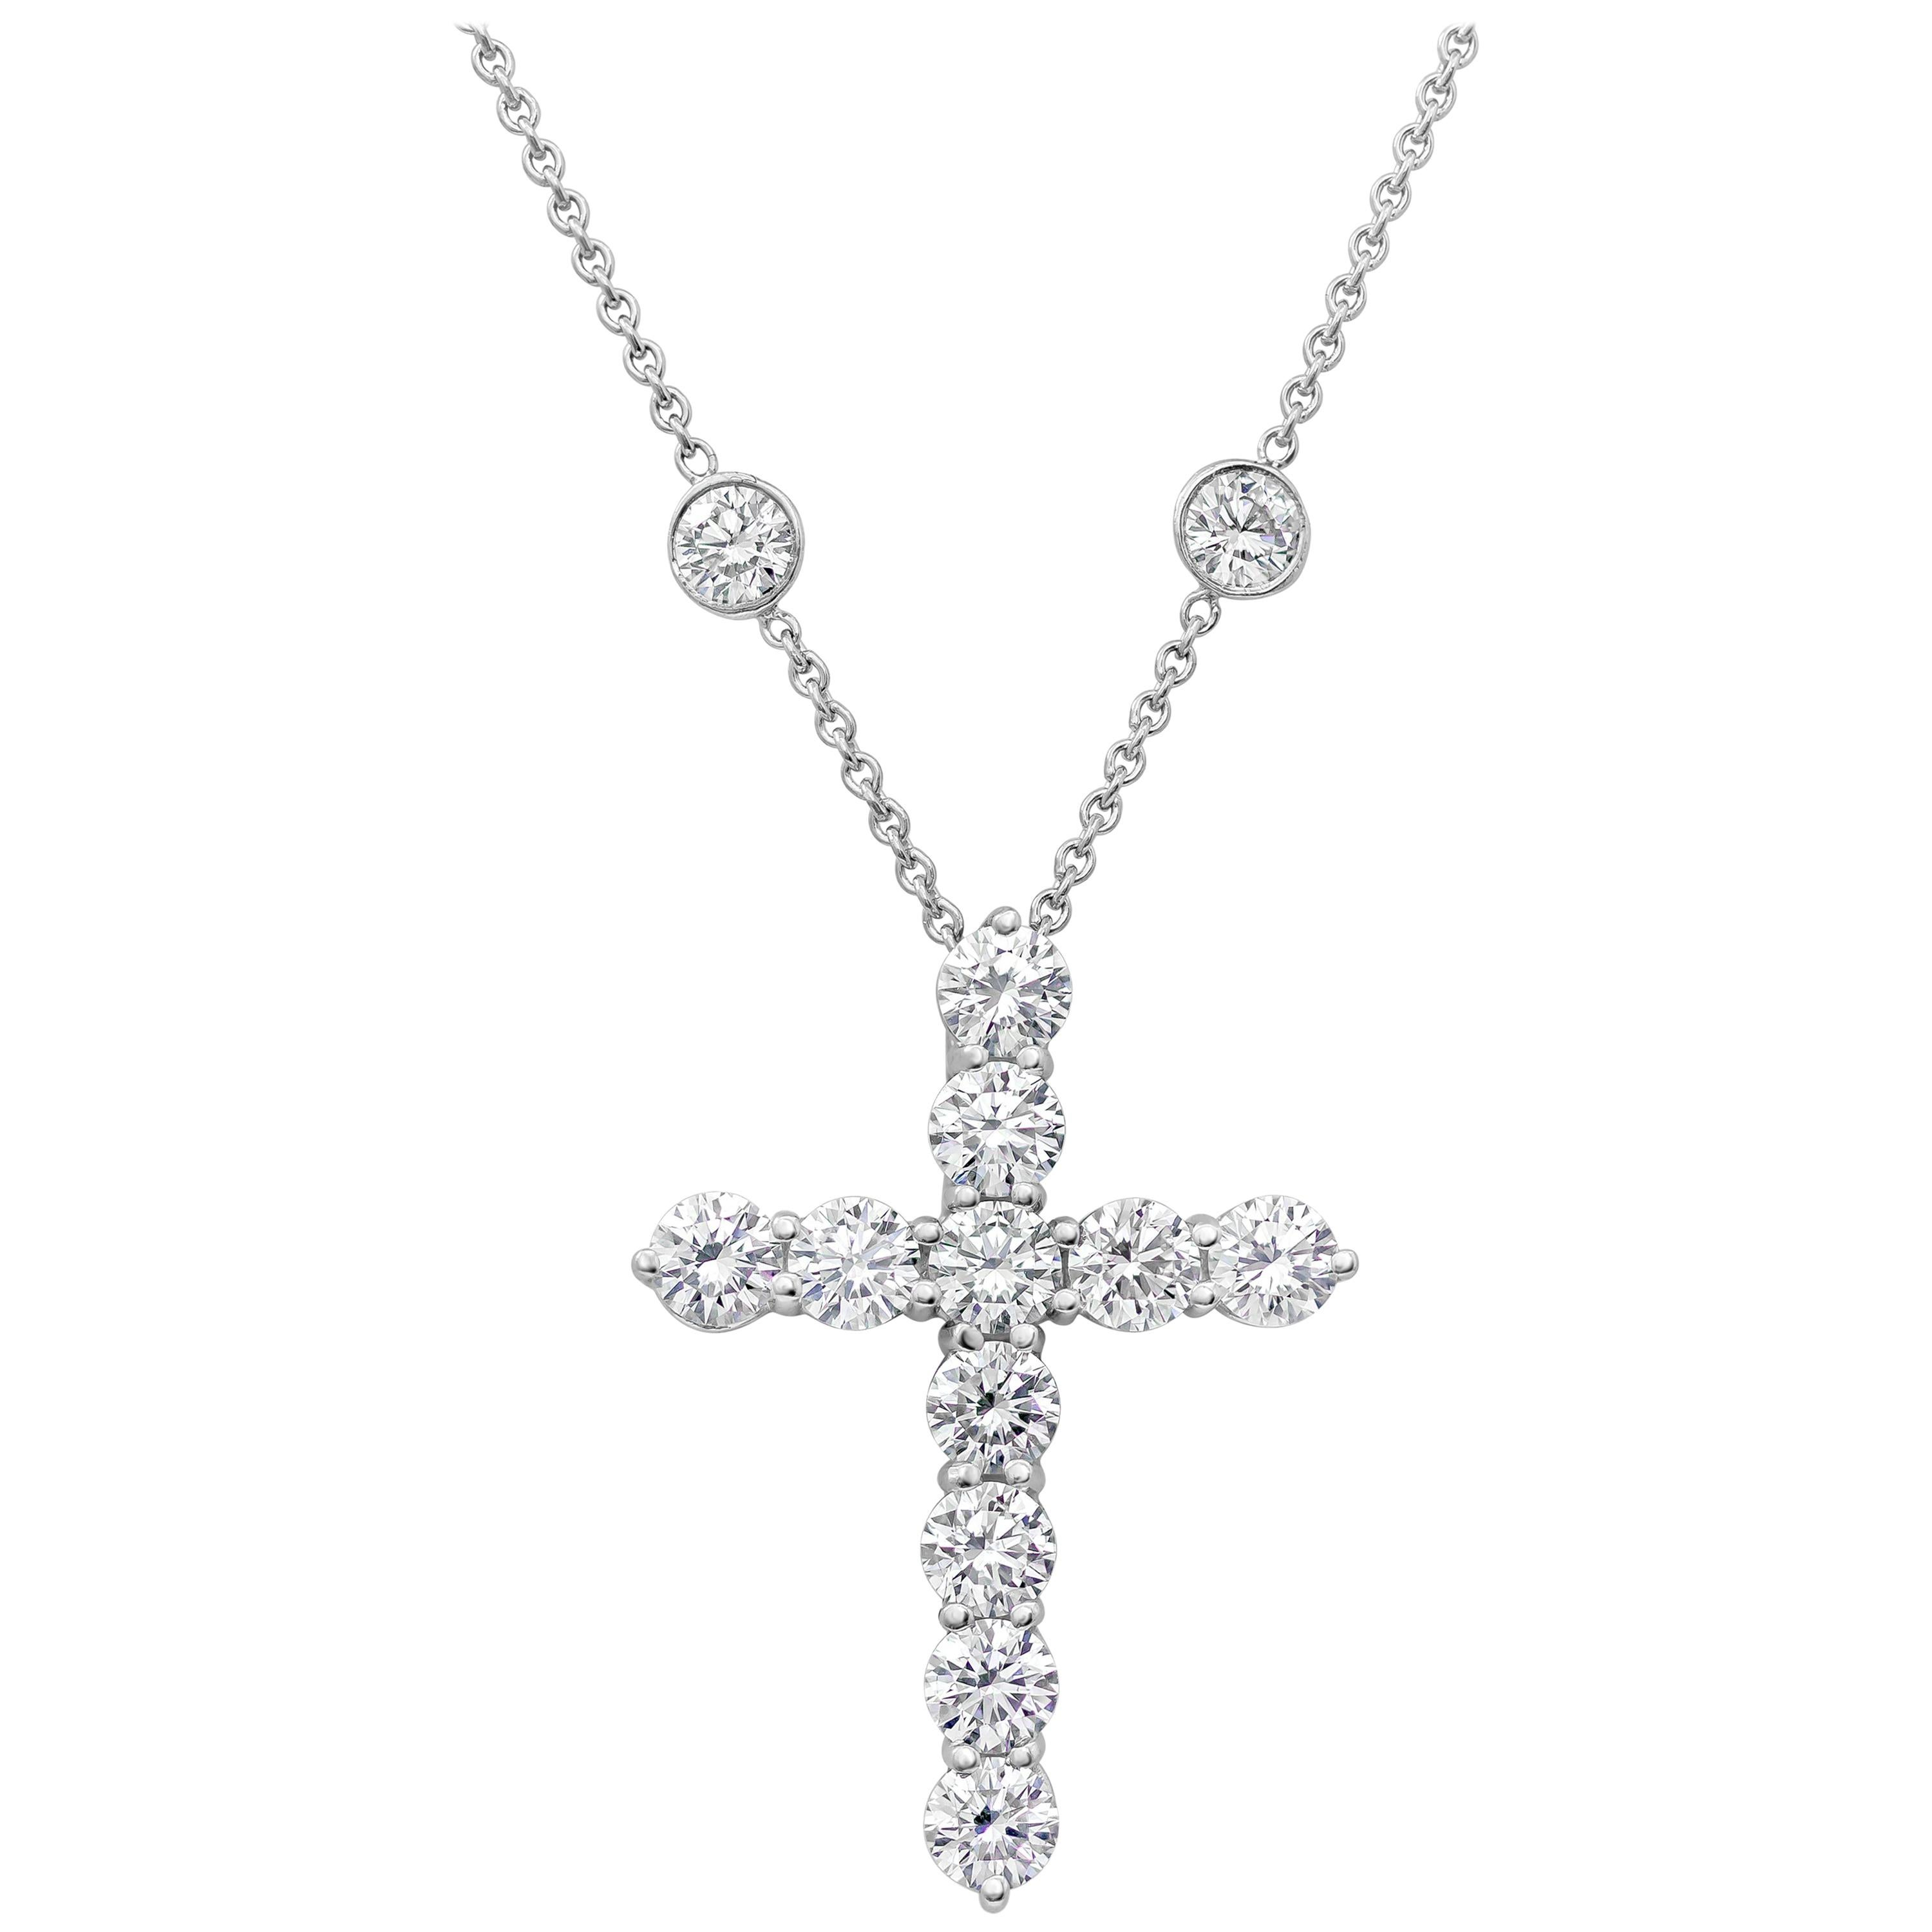 78d1cce0e Tiffany and Co. 4.75 Carat Diamond Cross Pendant Necklace For Sale at  1stdibs